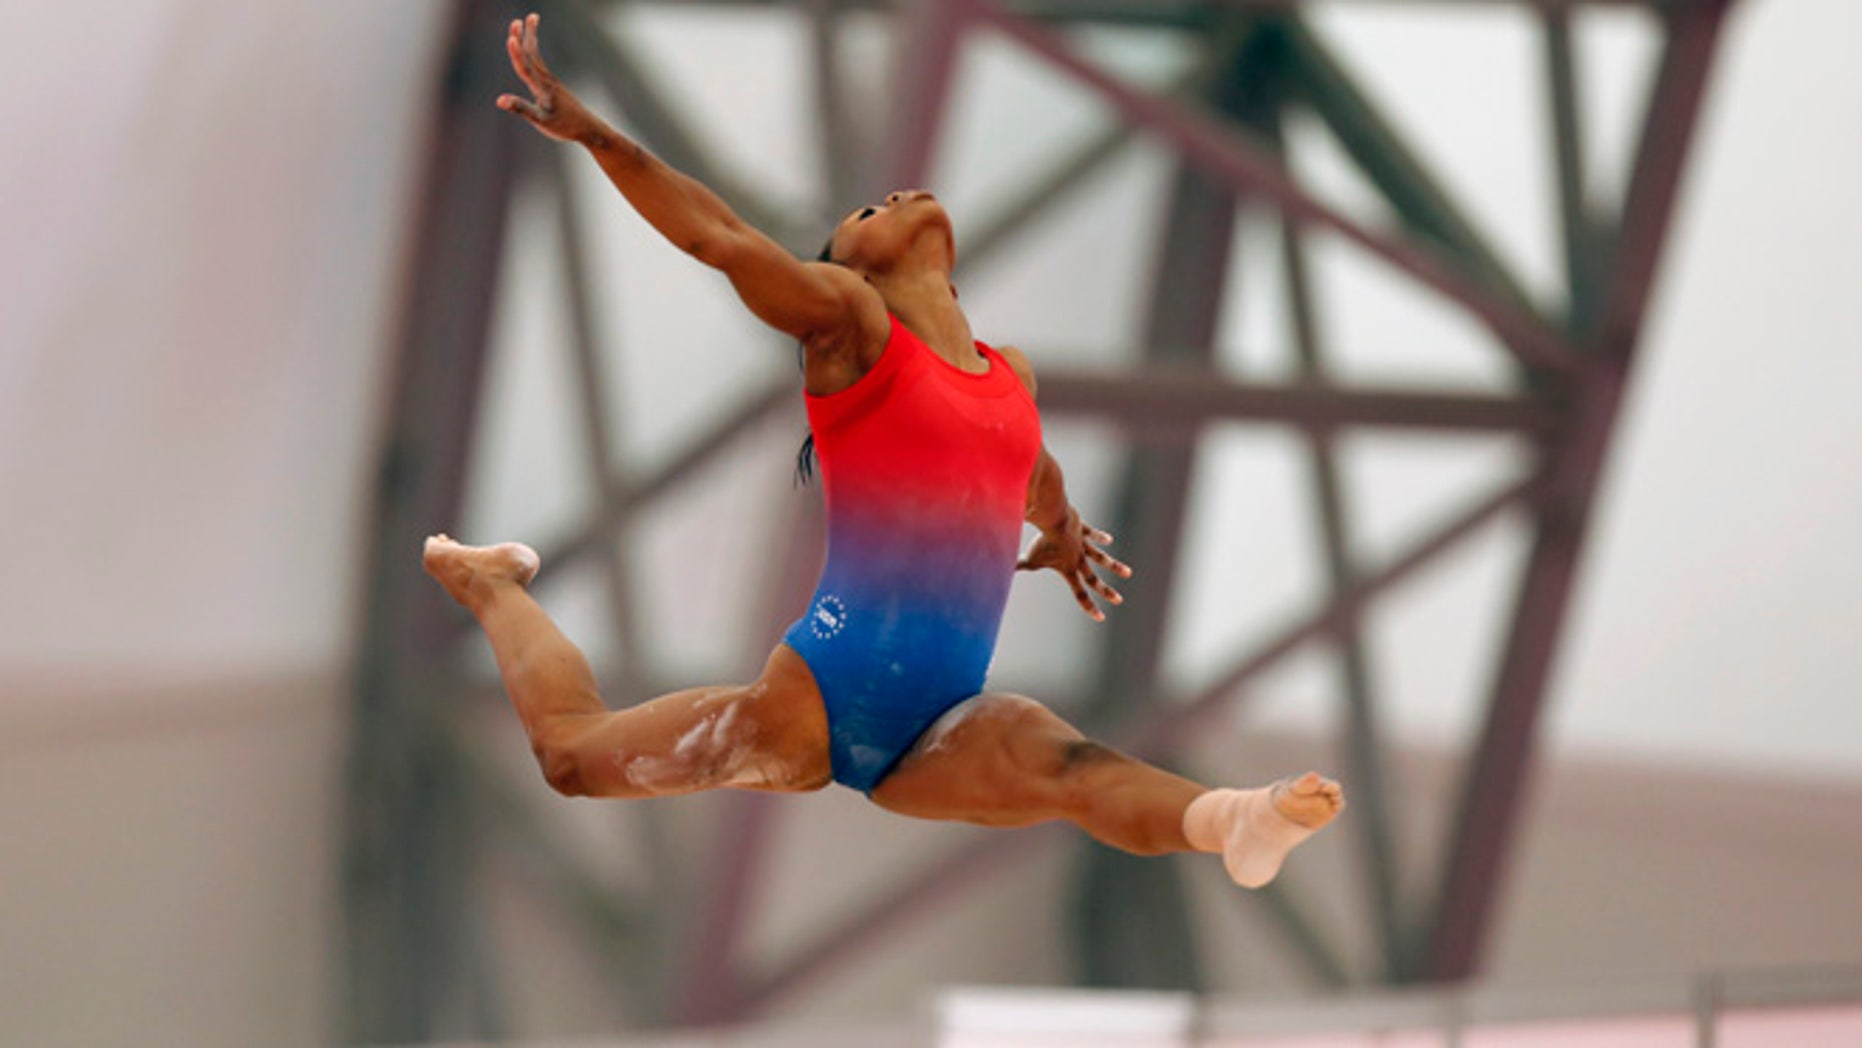 Gabby Douglas training at the London games in 2012.